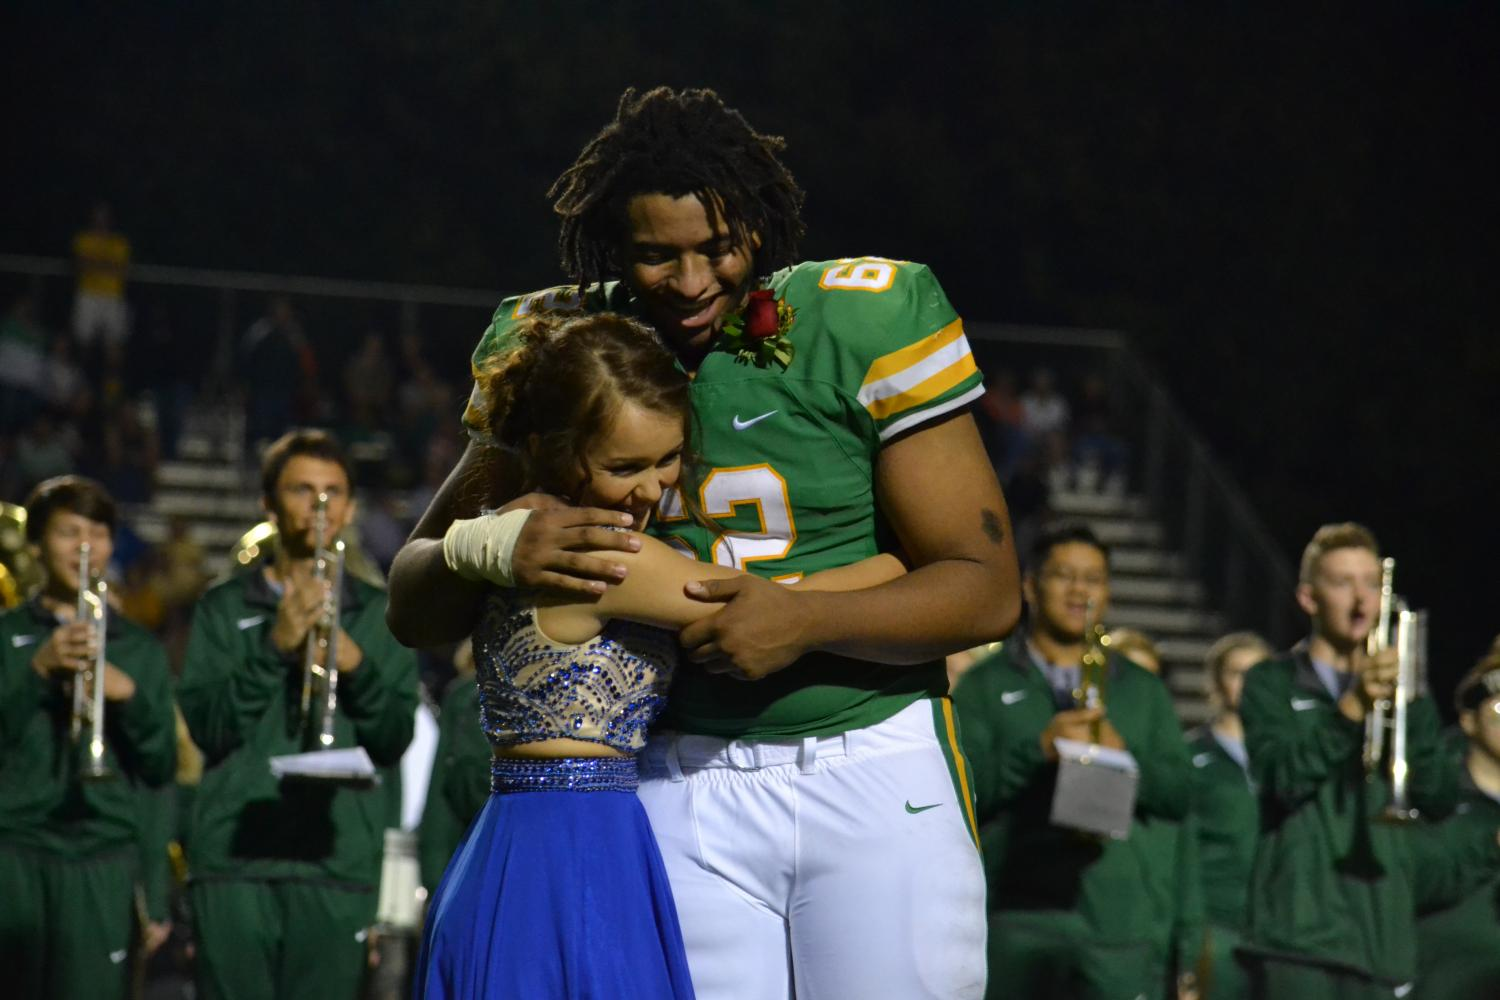 Gutierrez hugs Clark before walking to the middle of the field waiting to hear the name of the homecoming king.